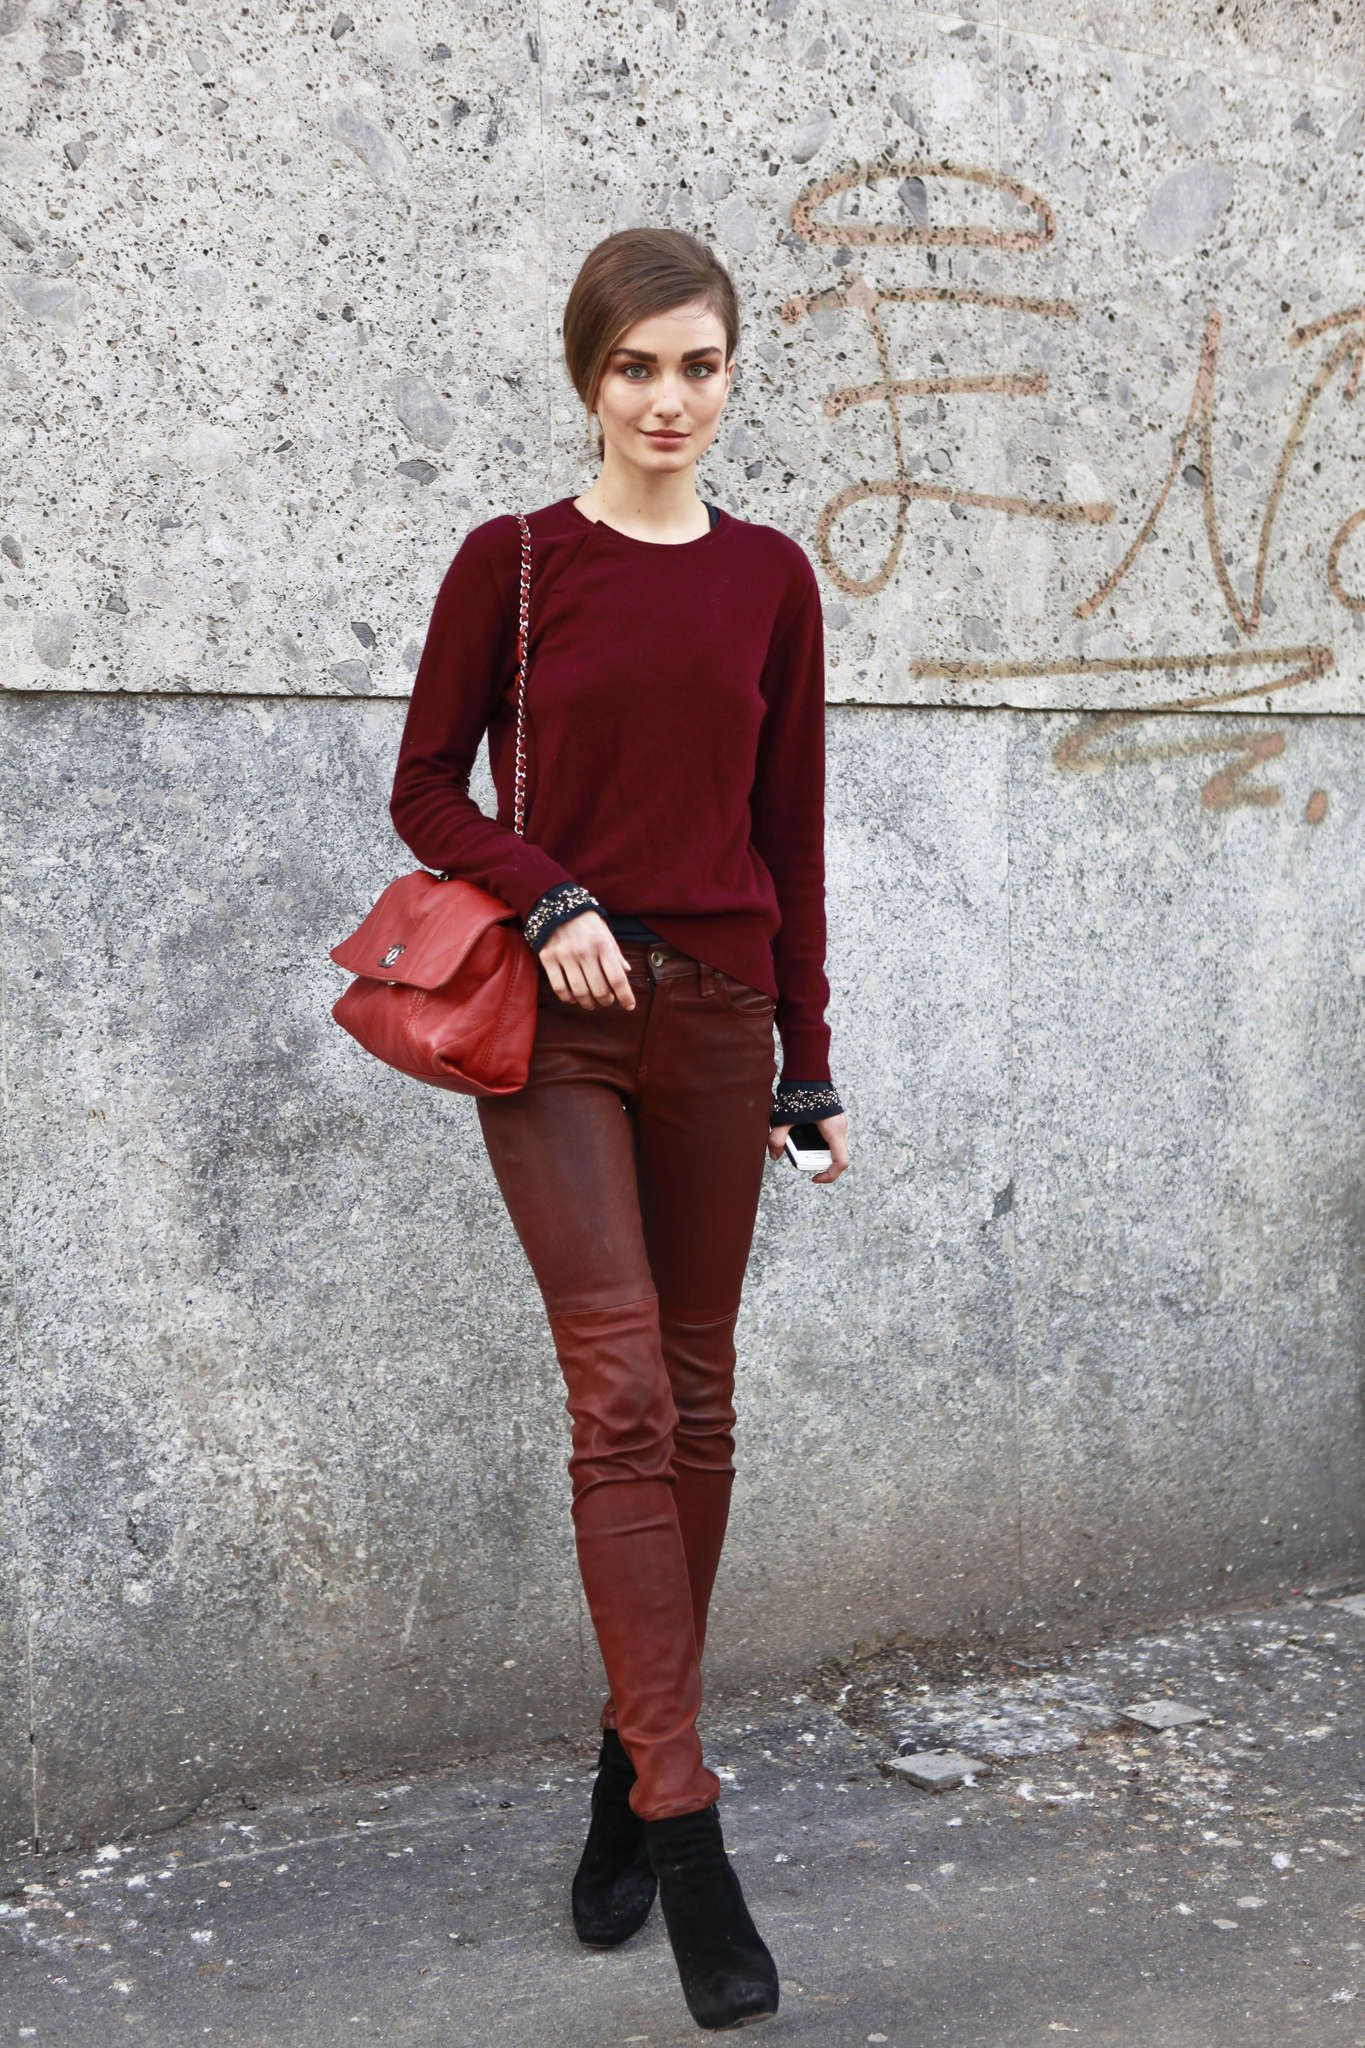 Andreea Diaconu - Lady in Red